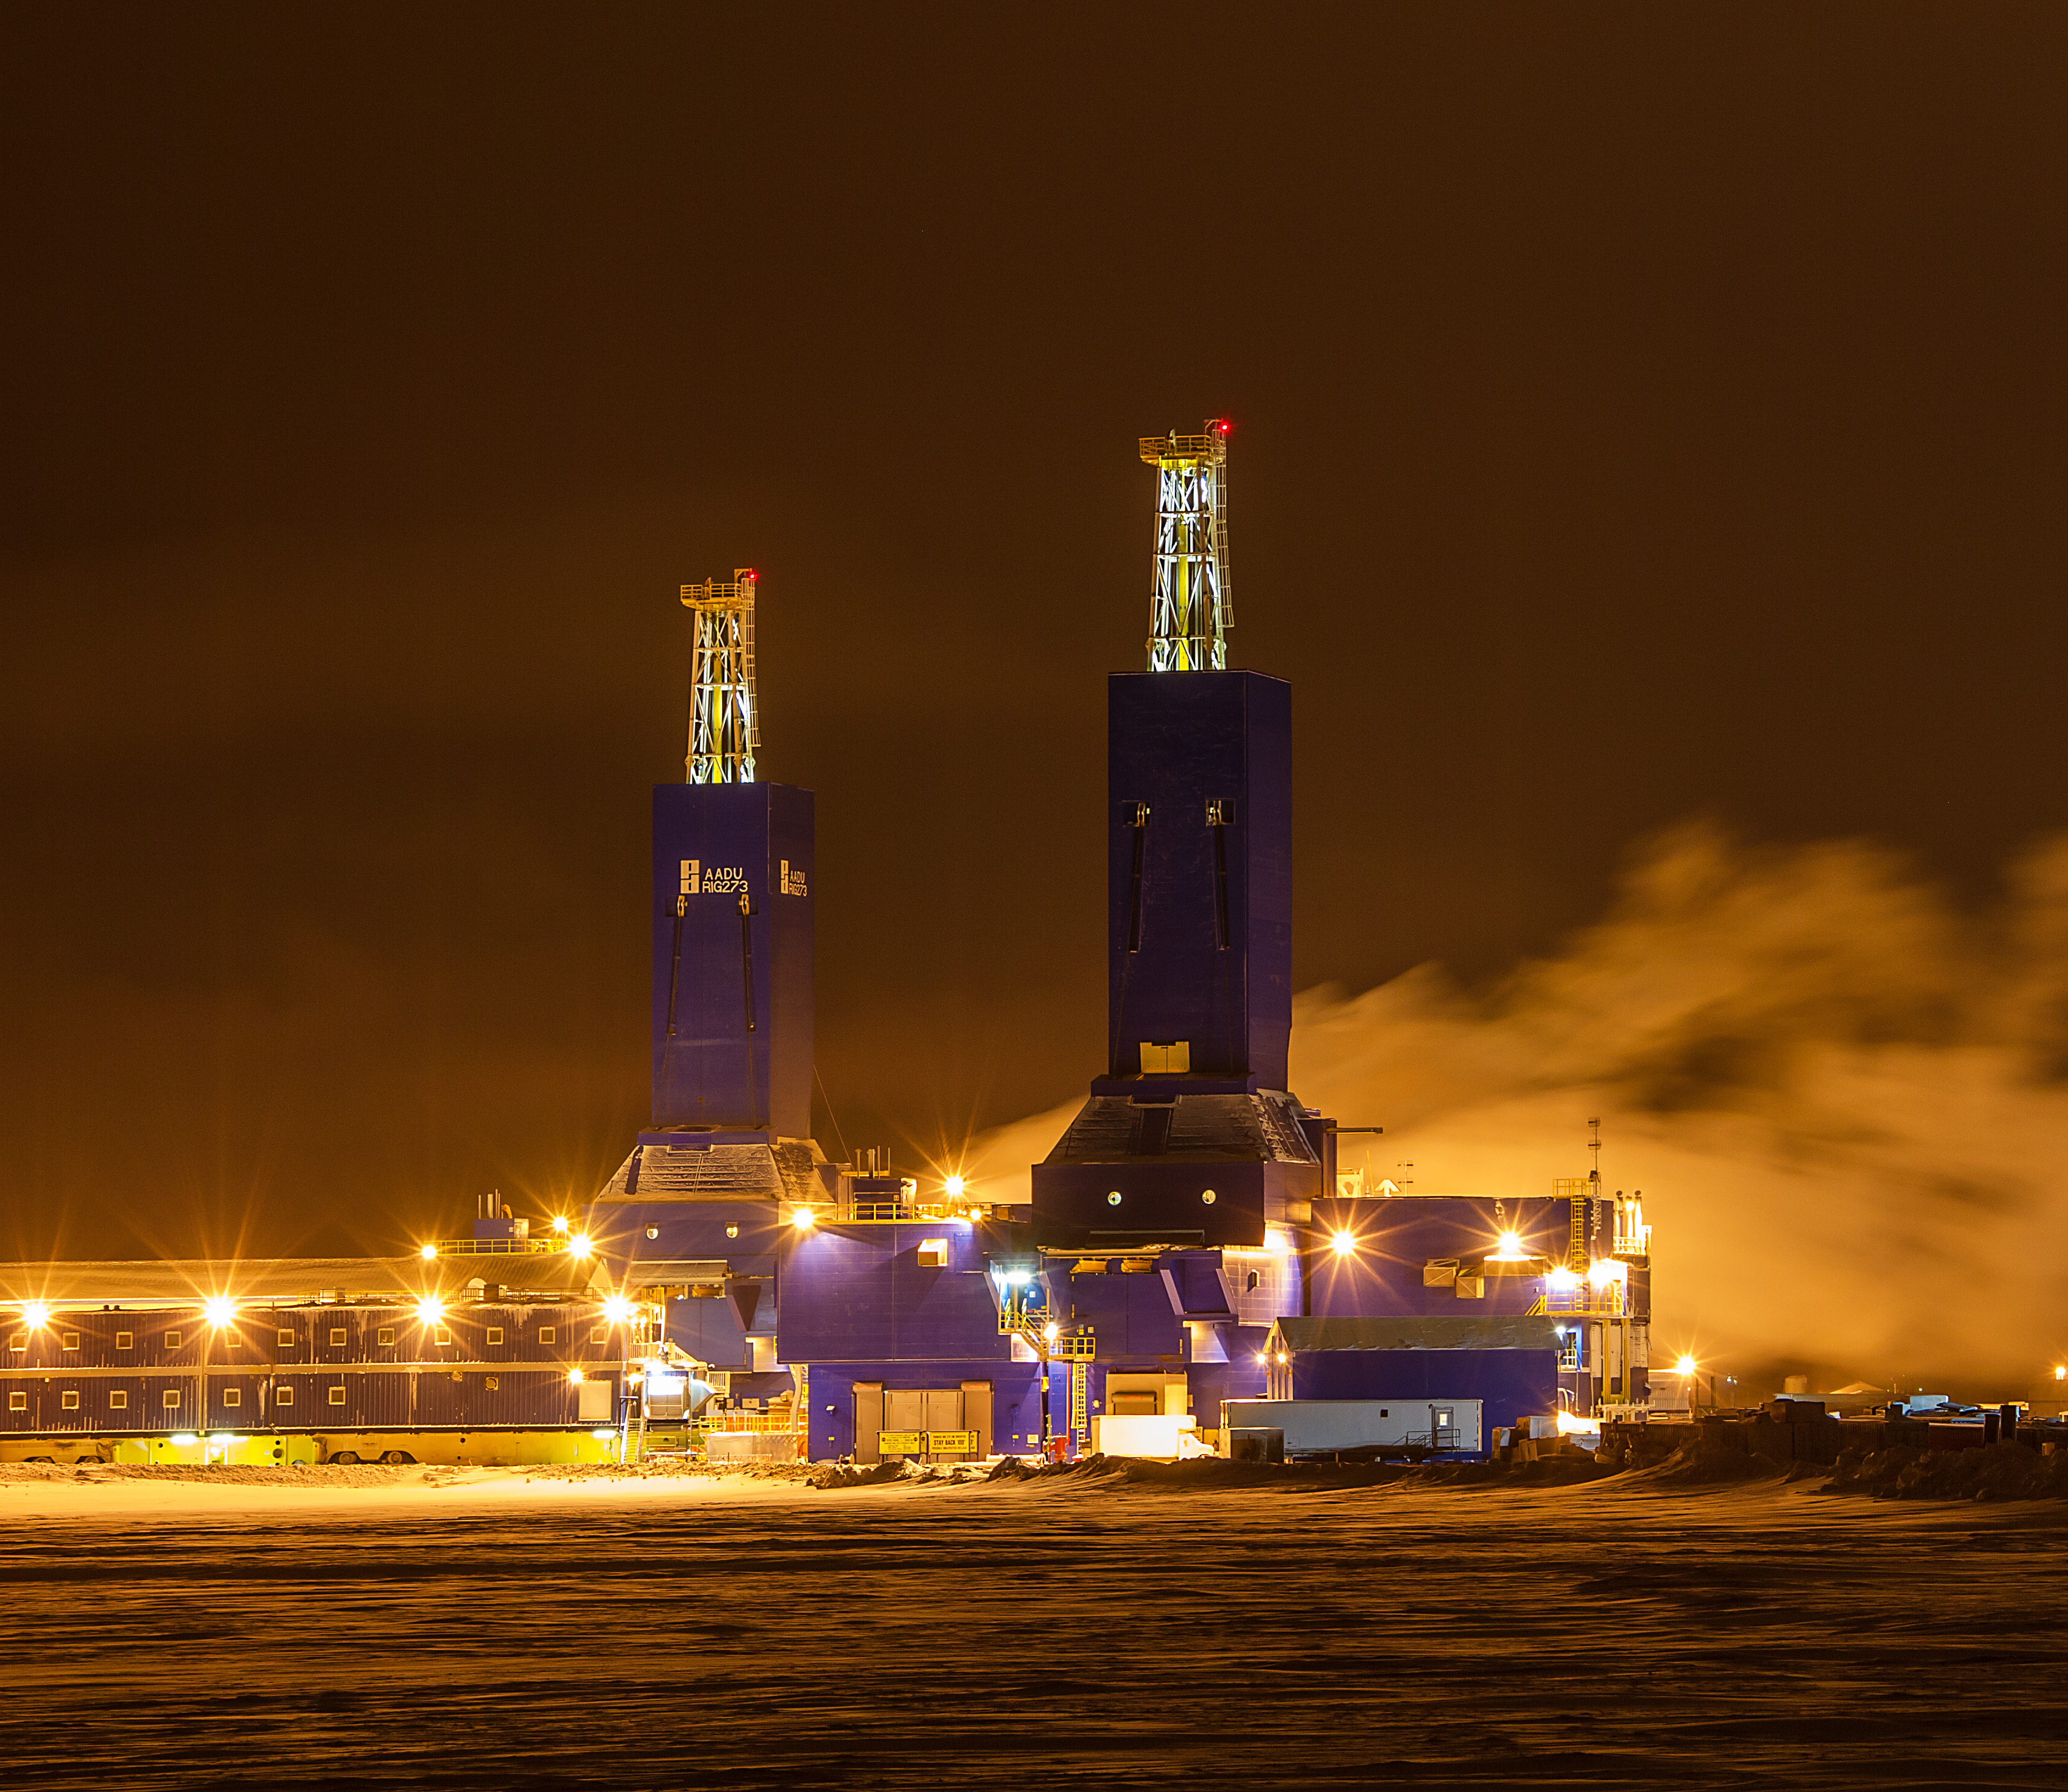 North Slop Drill Rigs at night